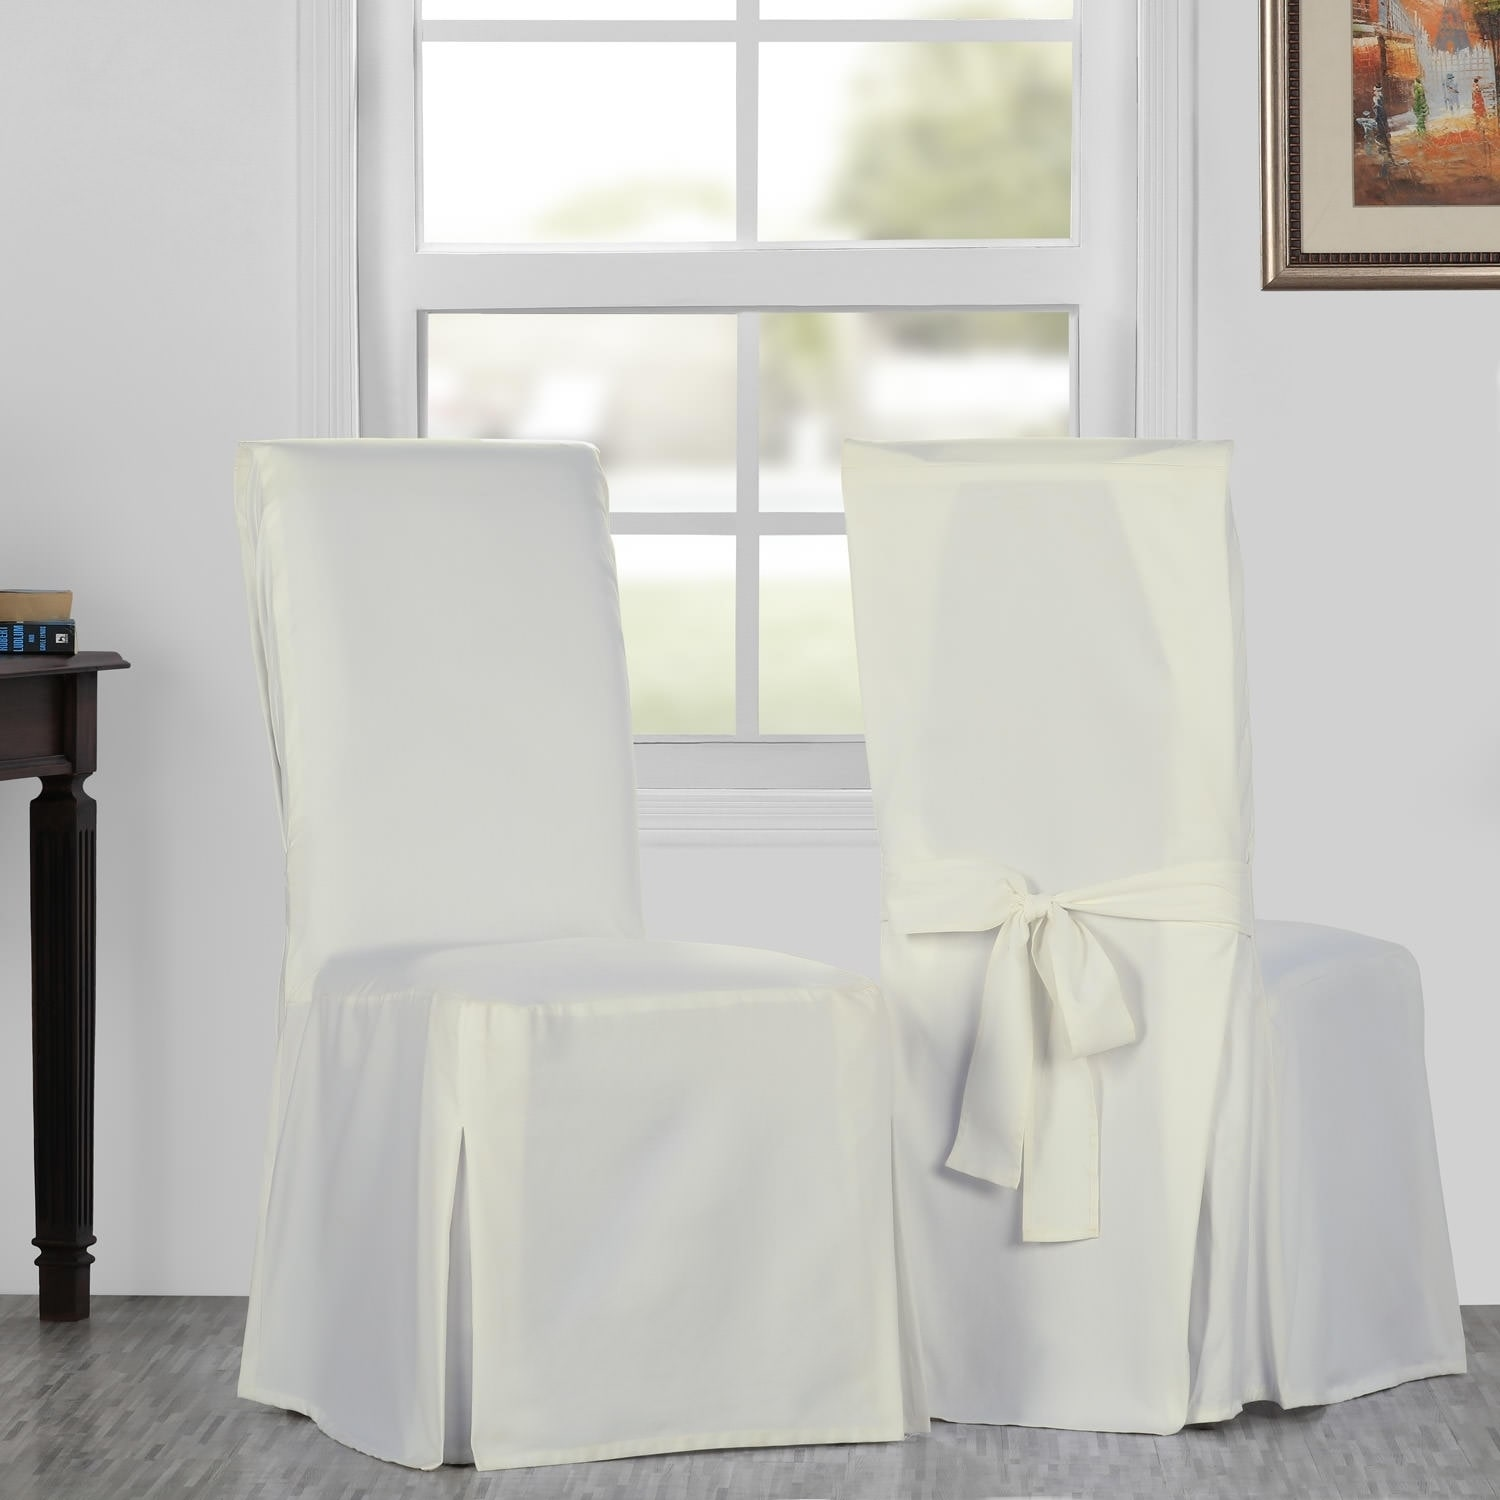 Astounding Details About Exclusive Fabrics Solid Cotton Twill Chair Covers Sold As Pabps2019 Chair Design Images Pabps2019Com